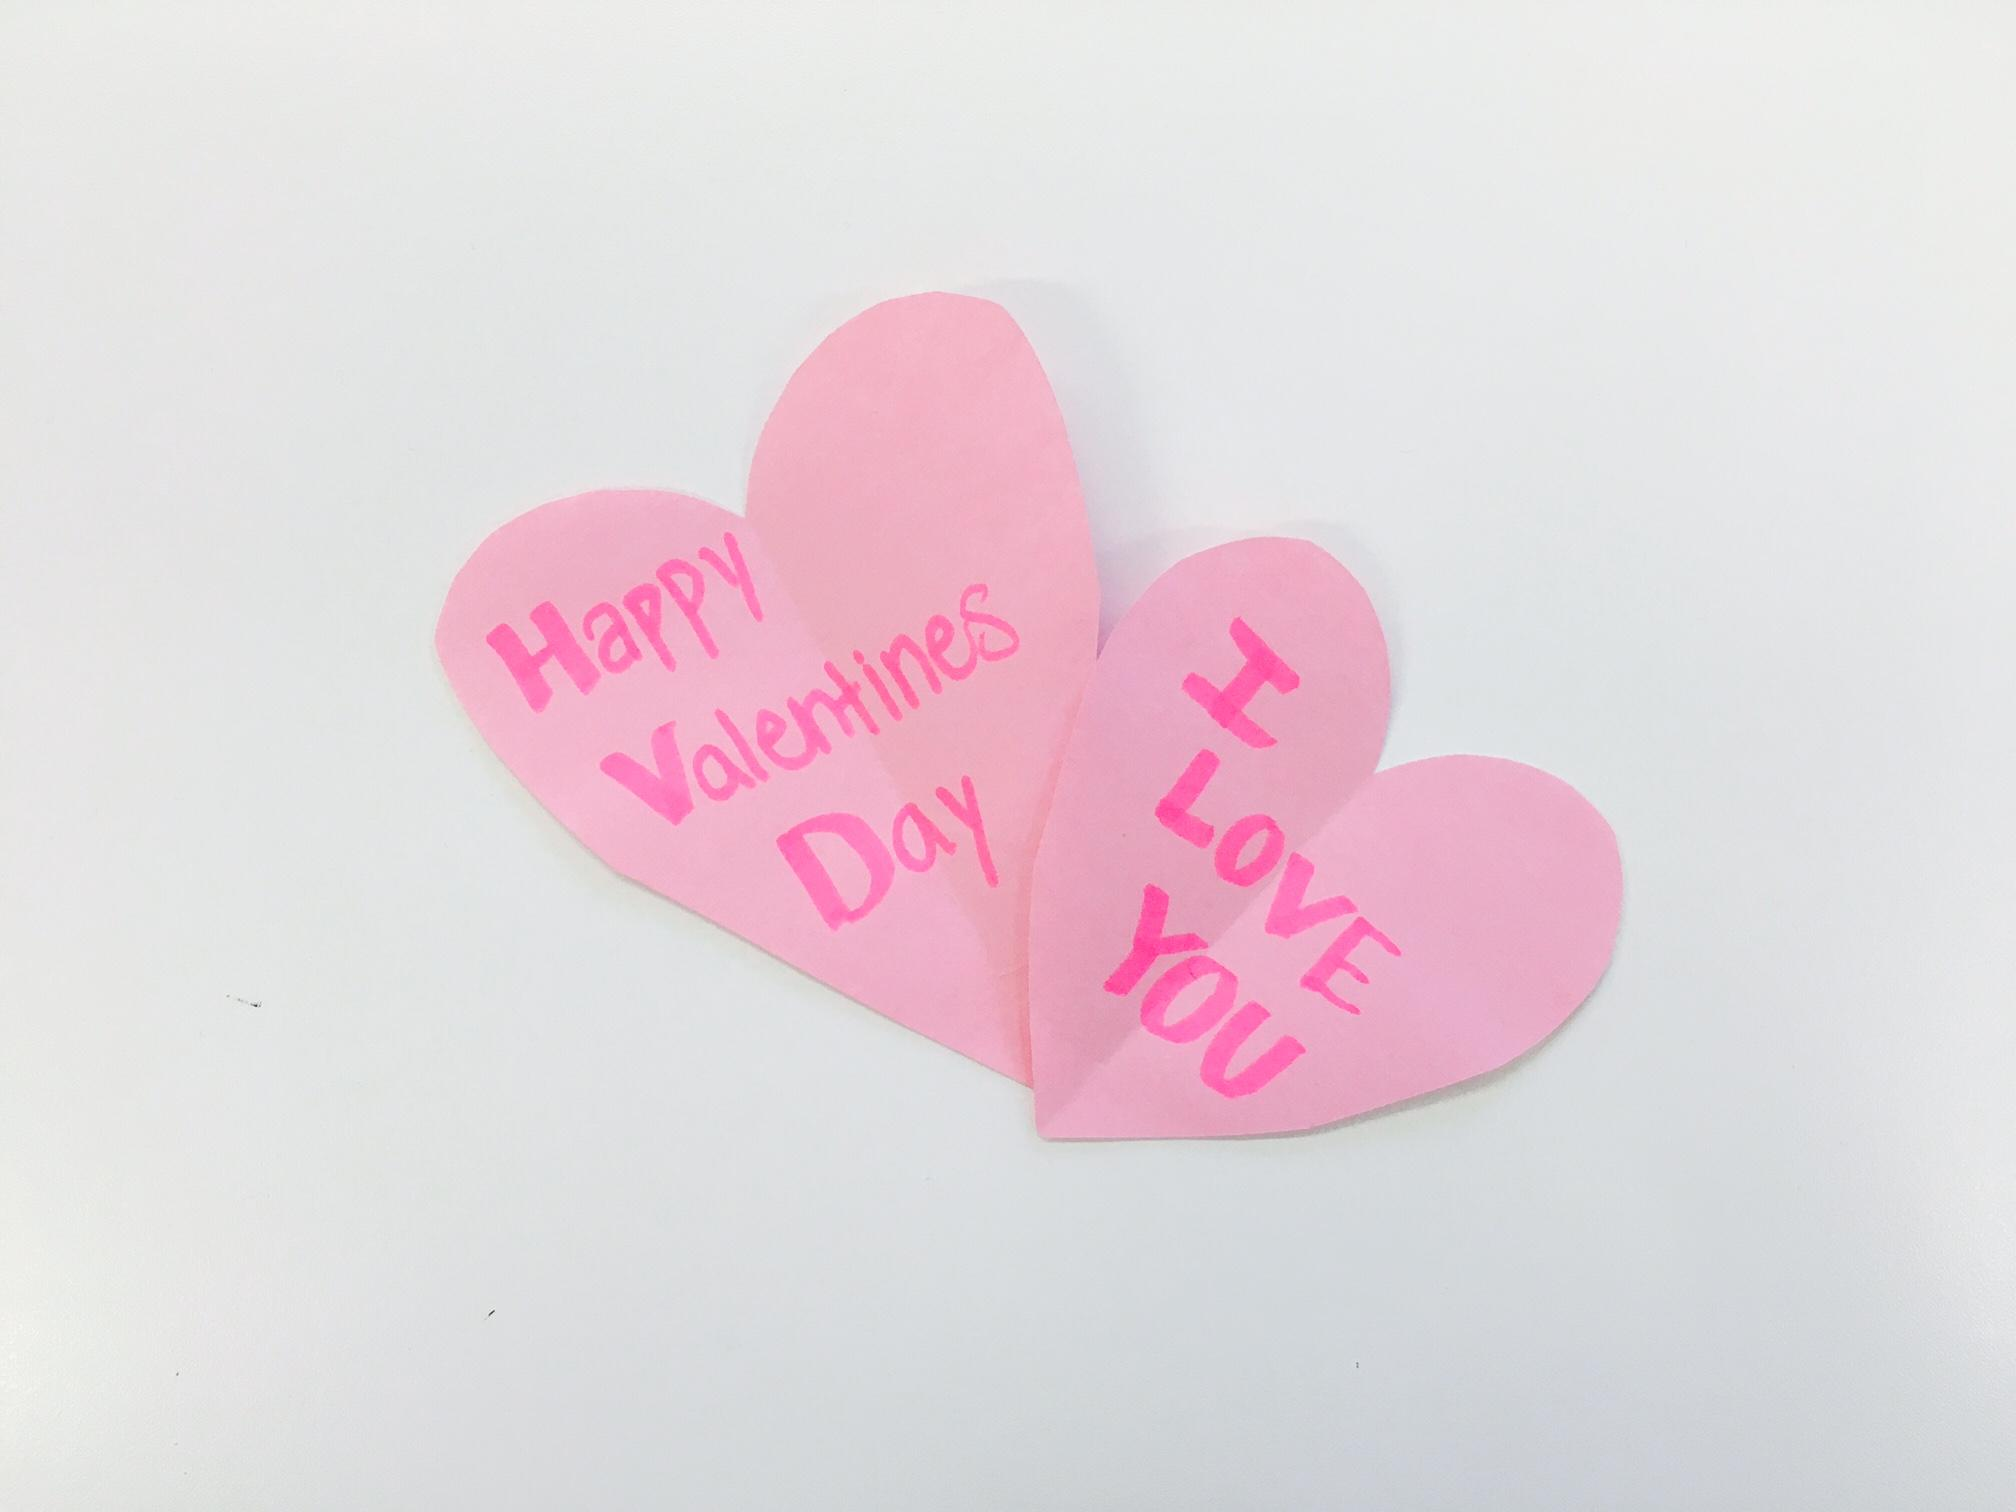 An example of a simple handmade craft for Valentine's Day.